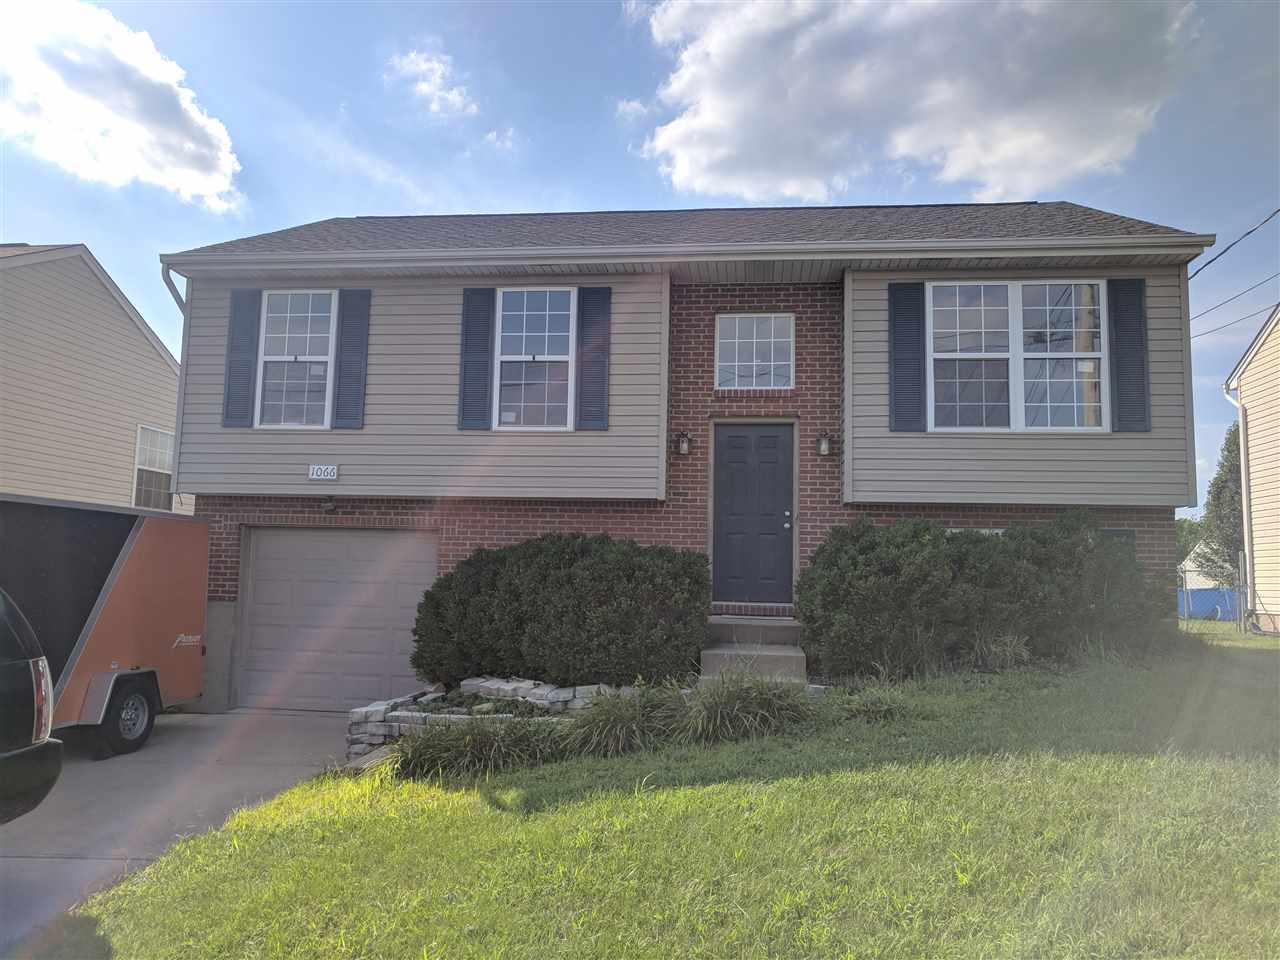 Photo 1 for 1066 Shadowridge Dr Elsmere, KY 41018